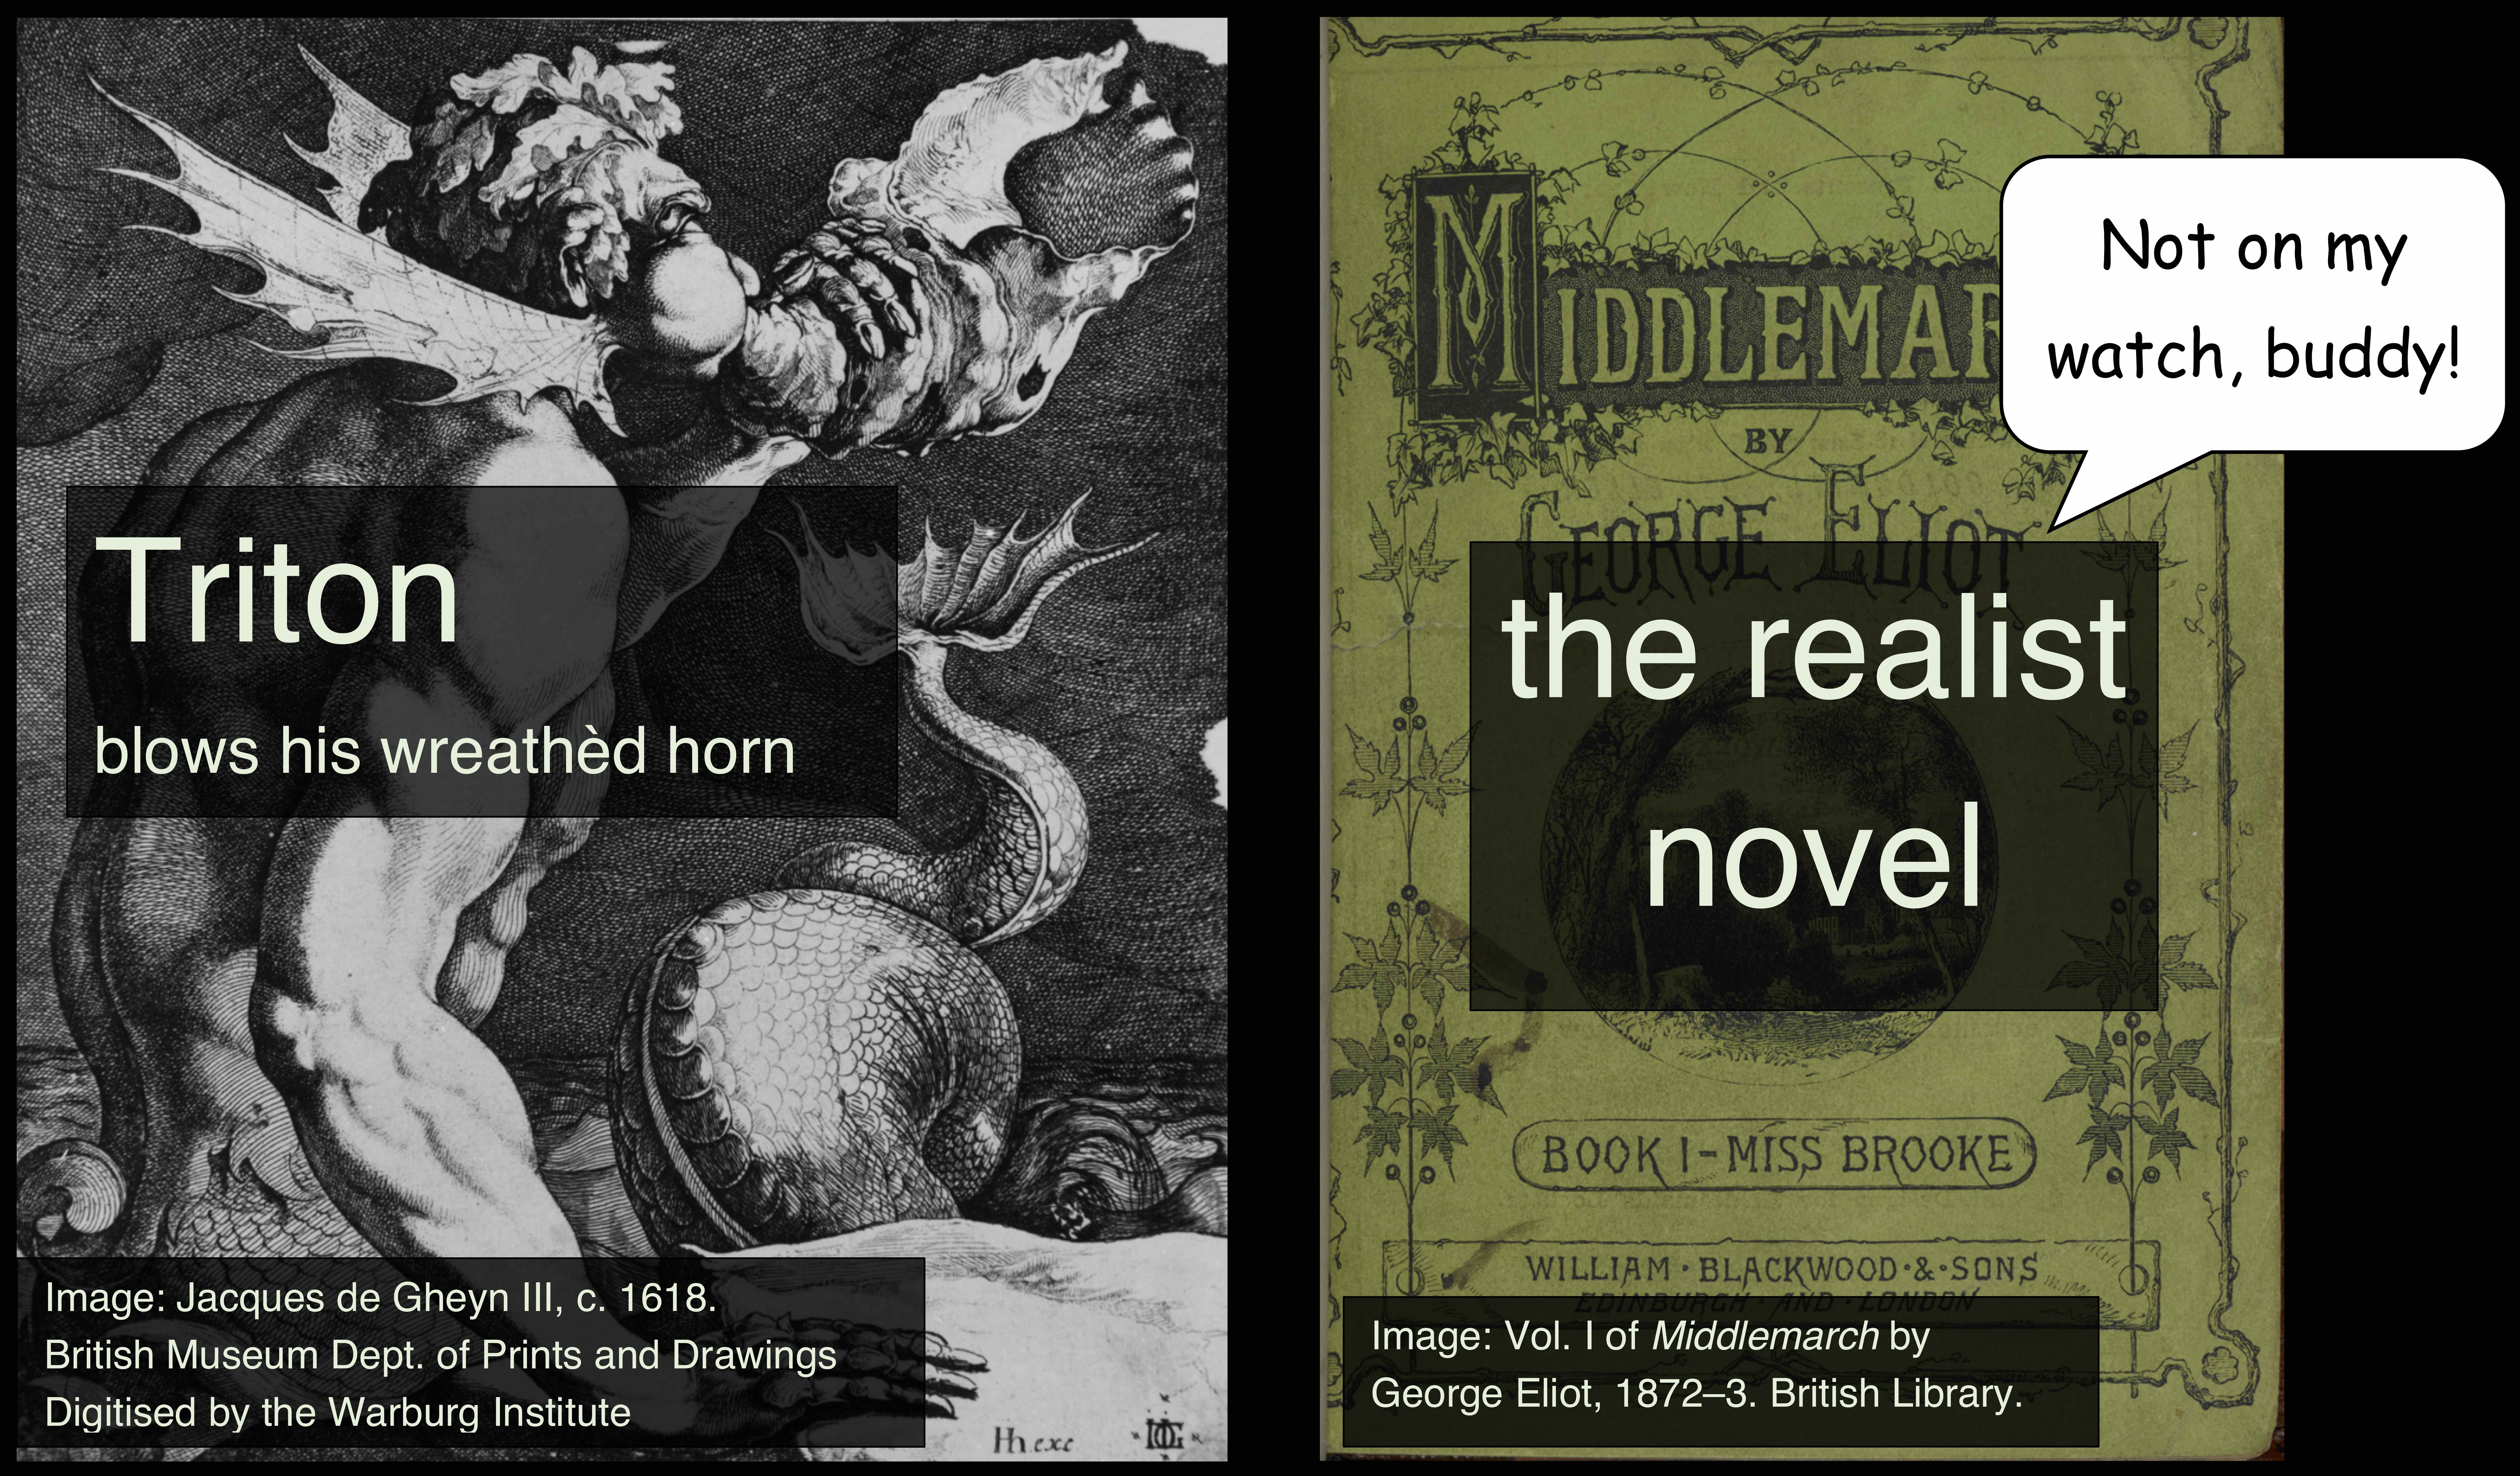 Left-hand image is a 1618 engraving of Triton blowing his horn; on the right is the cover of the 1872 novel Middlemarch, a classic of realist fiction, with a speech bubble coming out of it that says 'Not on my watch, buddy'